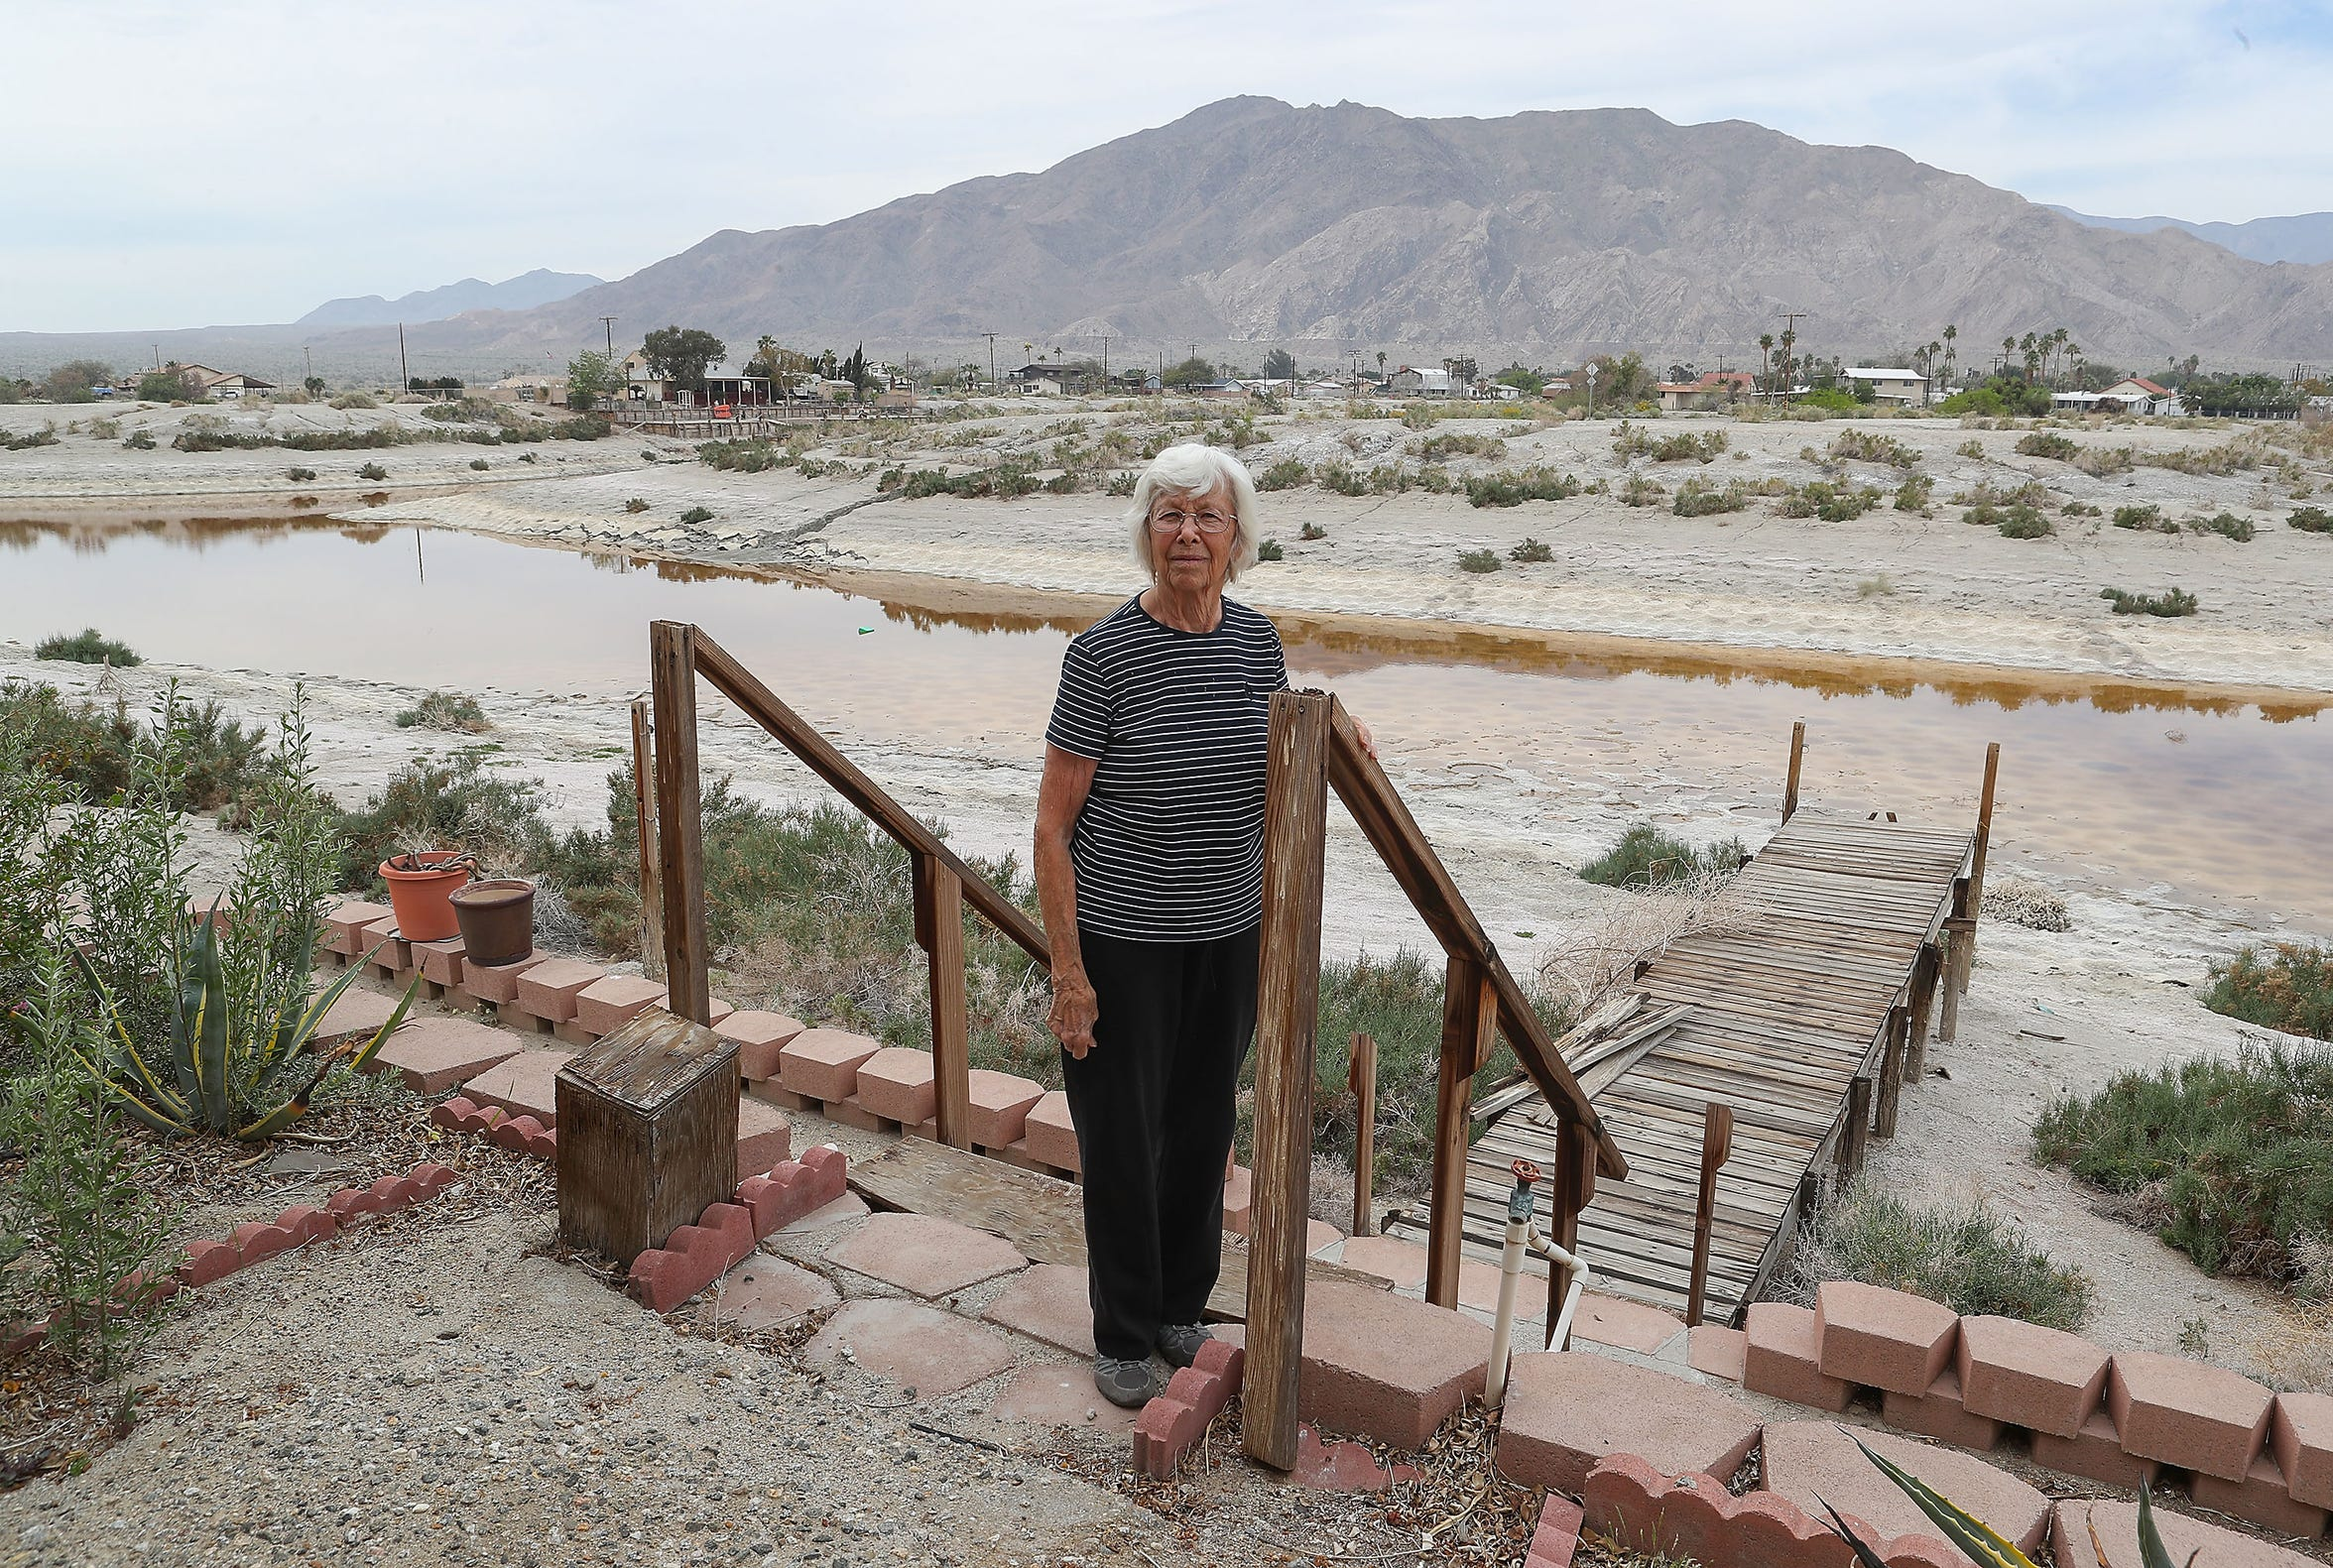 Nellie McConnell and her late husband built a house on the Salton Sea decades ago to enjoy their boat. As the lake has dried up, the water  no longer reaches her dock, and she often experiences nasal respiratory irritation. March 27, 2019. Jay Calderon/The Desert Sun